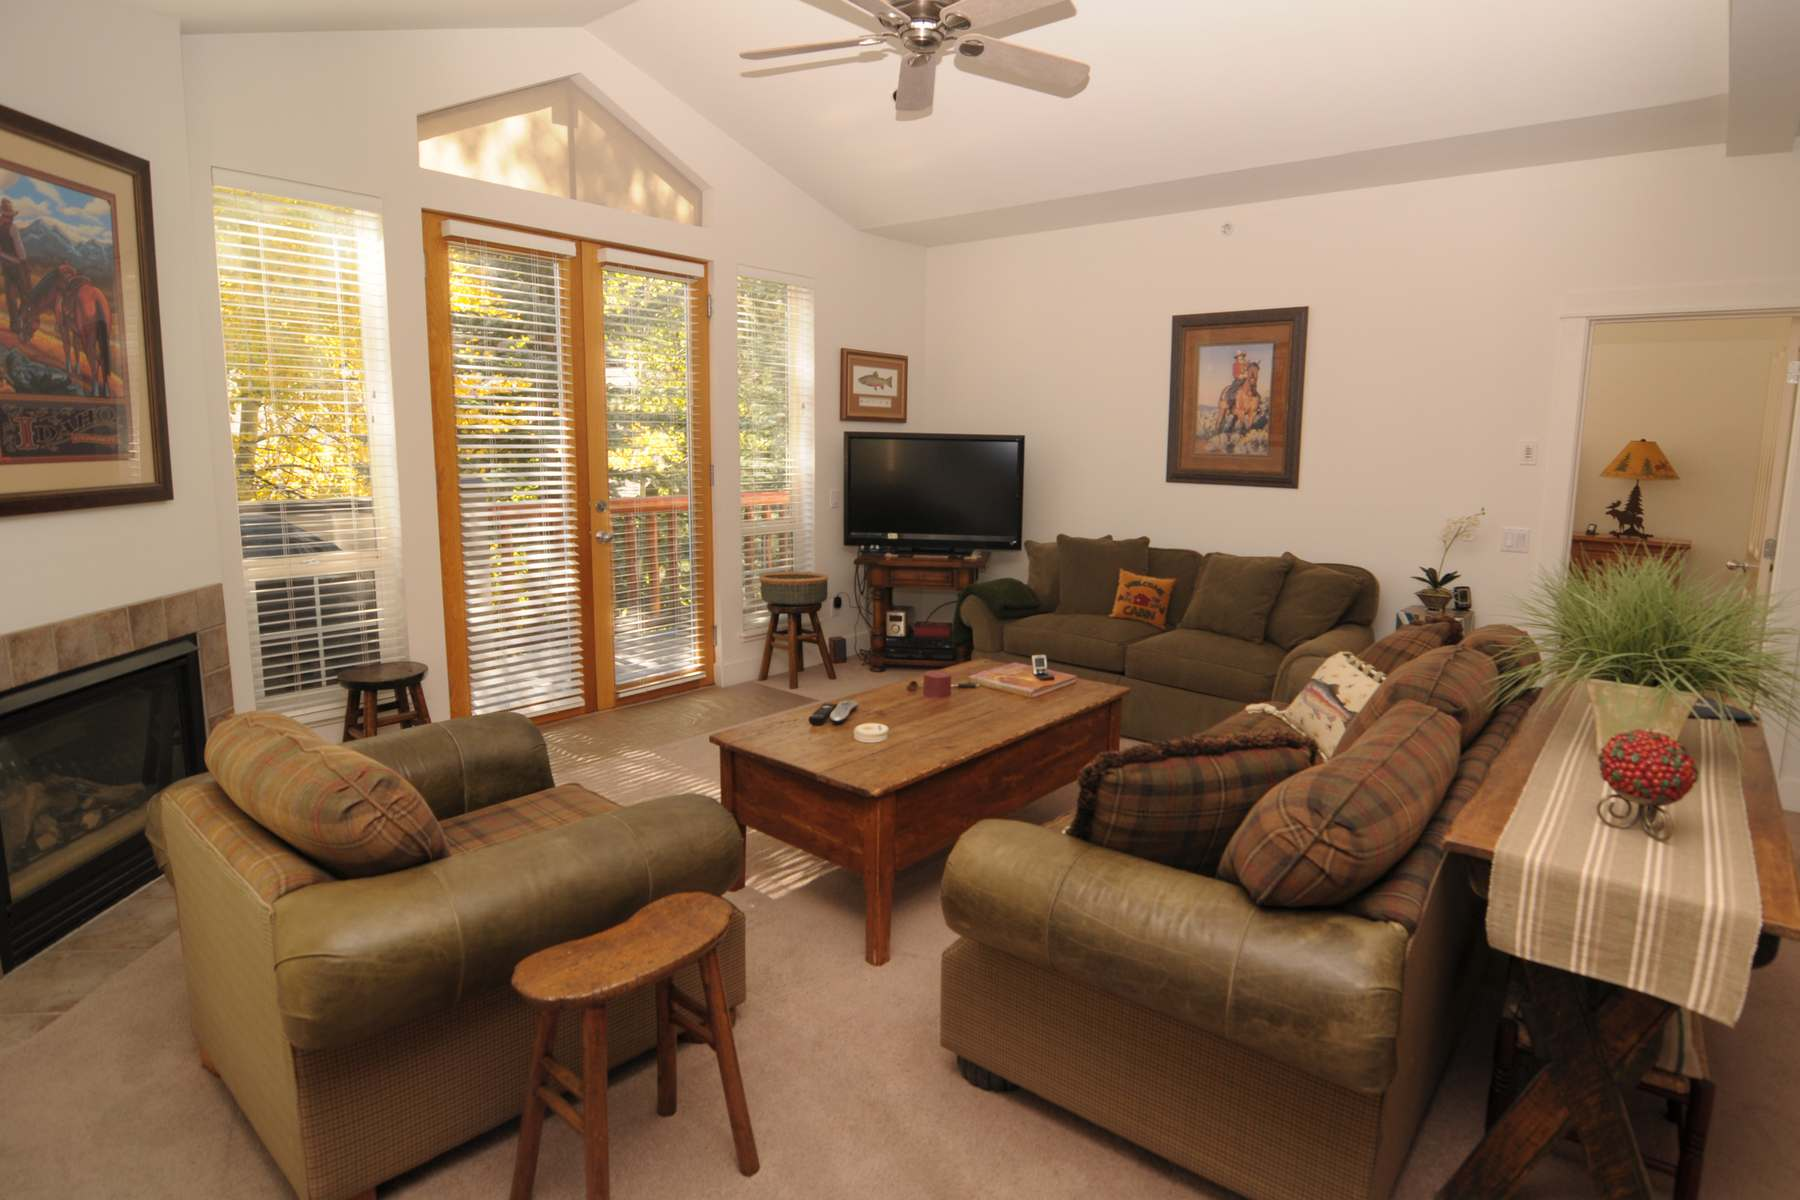 Condominium for Sale at Right Where You Want To Be Ketchum, Idaho 83340 United States